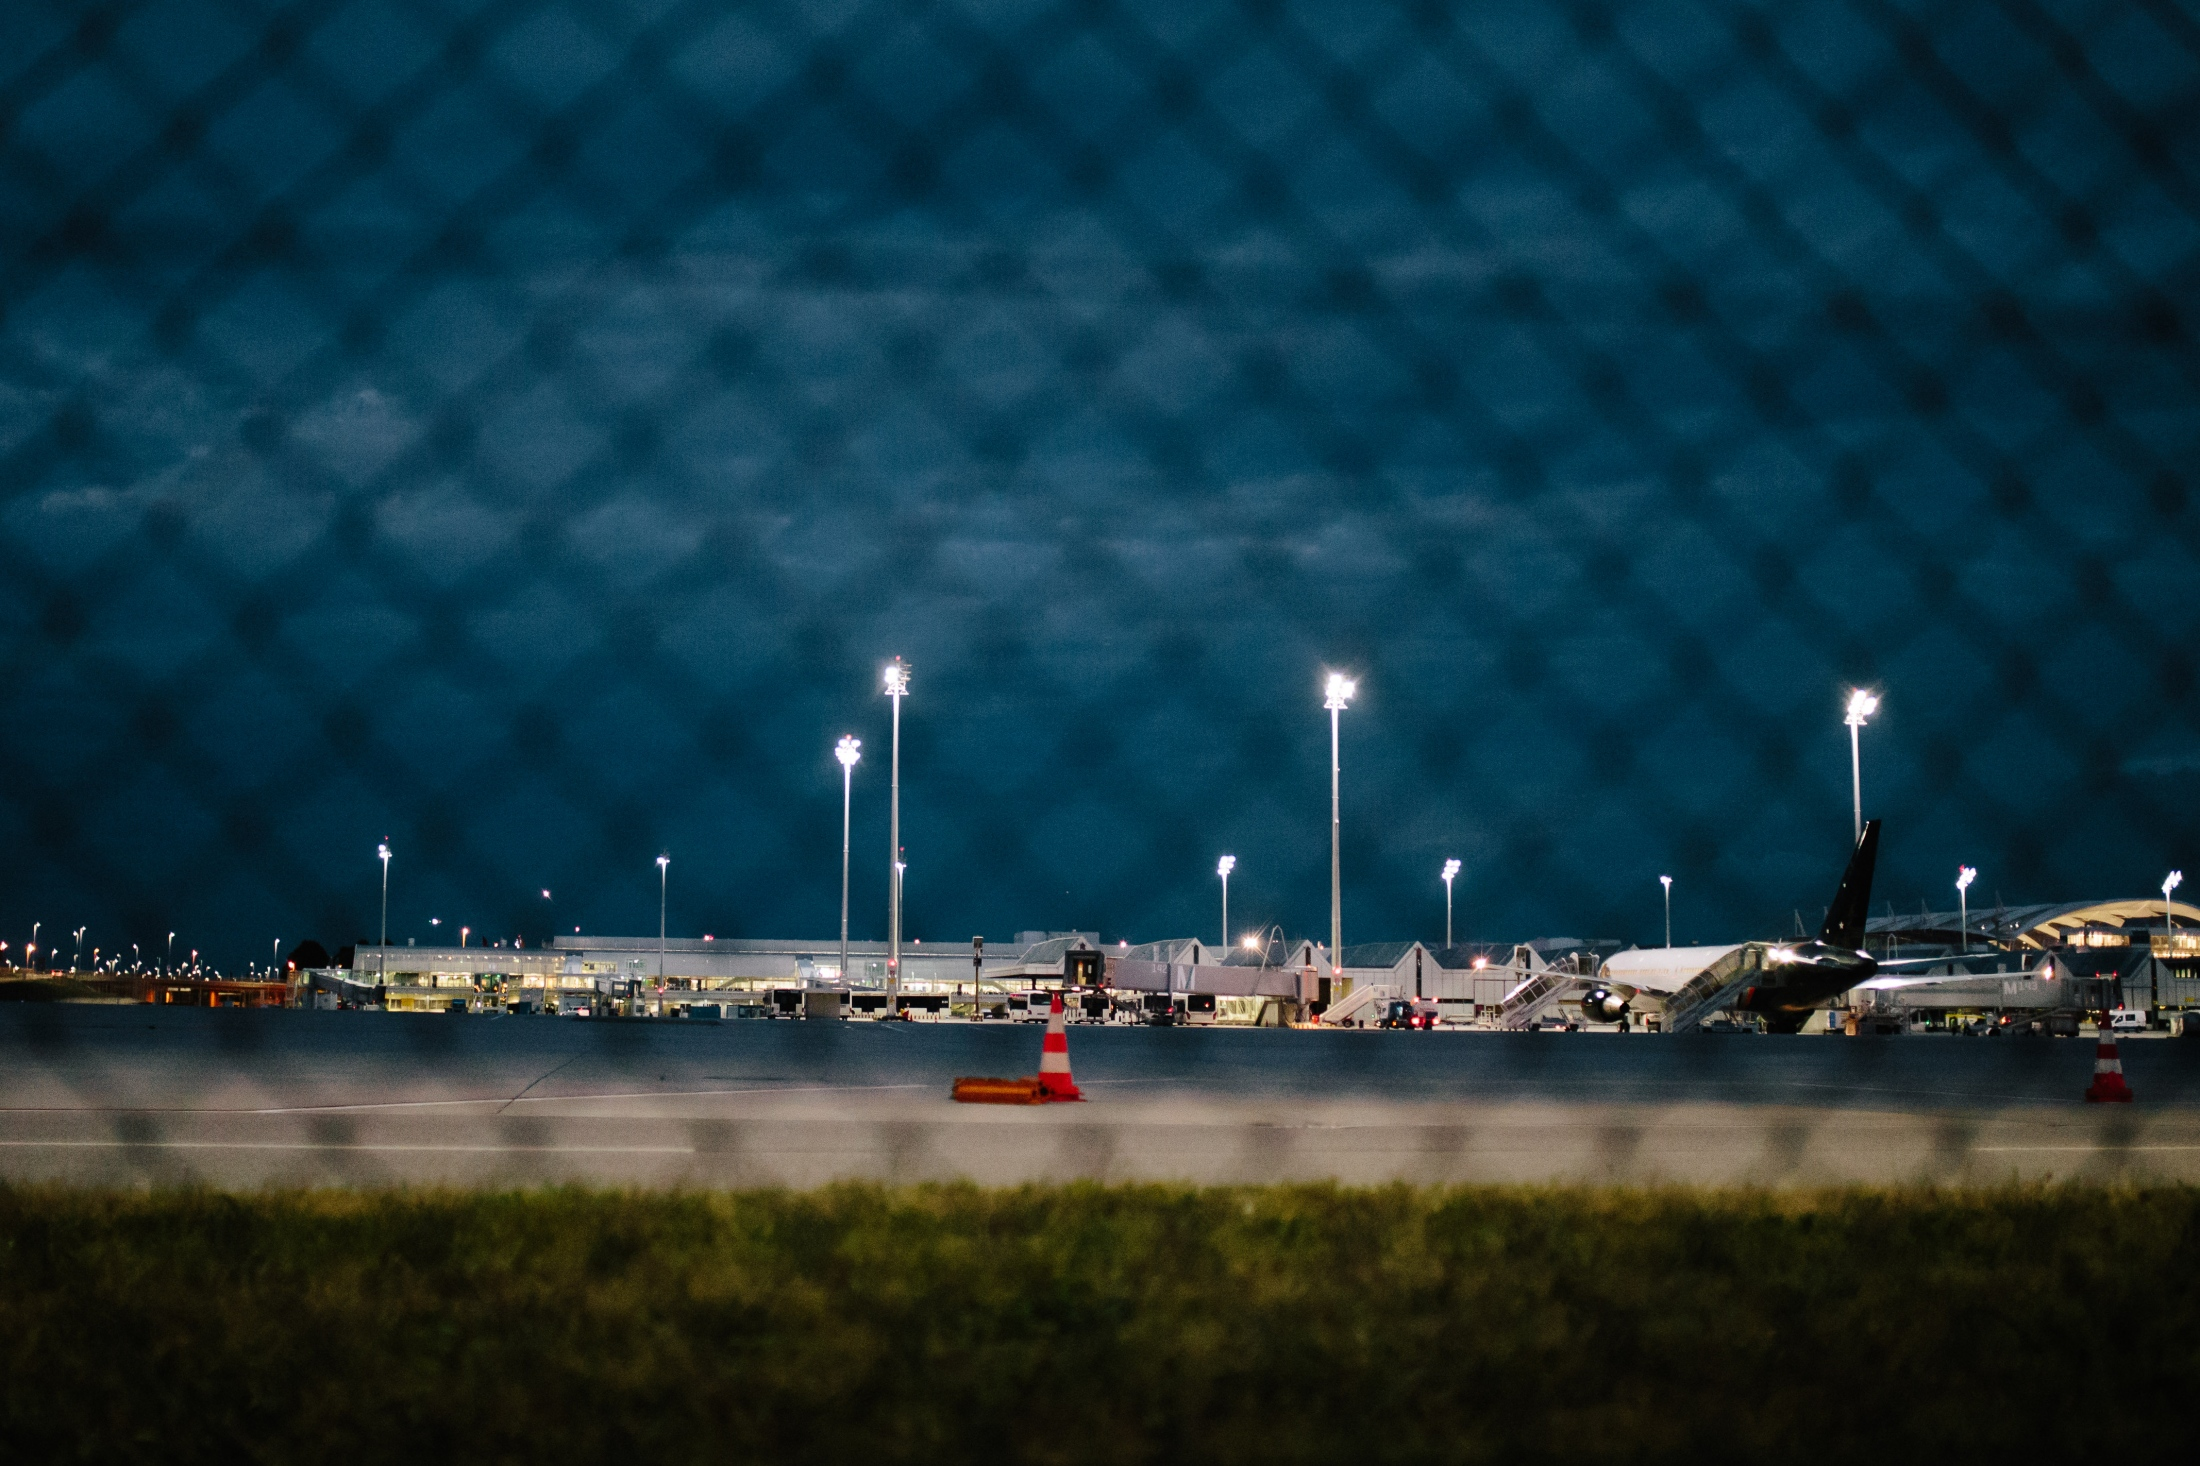 View on the airfield of Munich airport. August 14th, 2018.